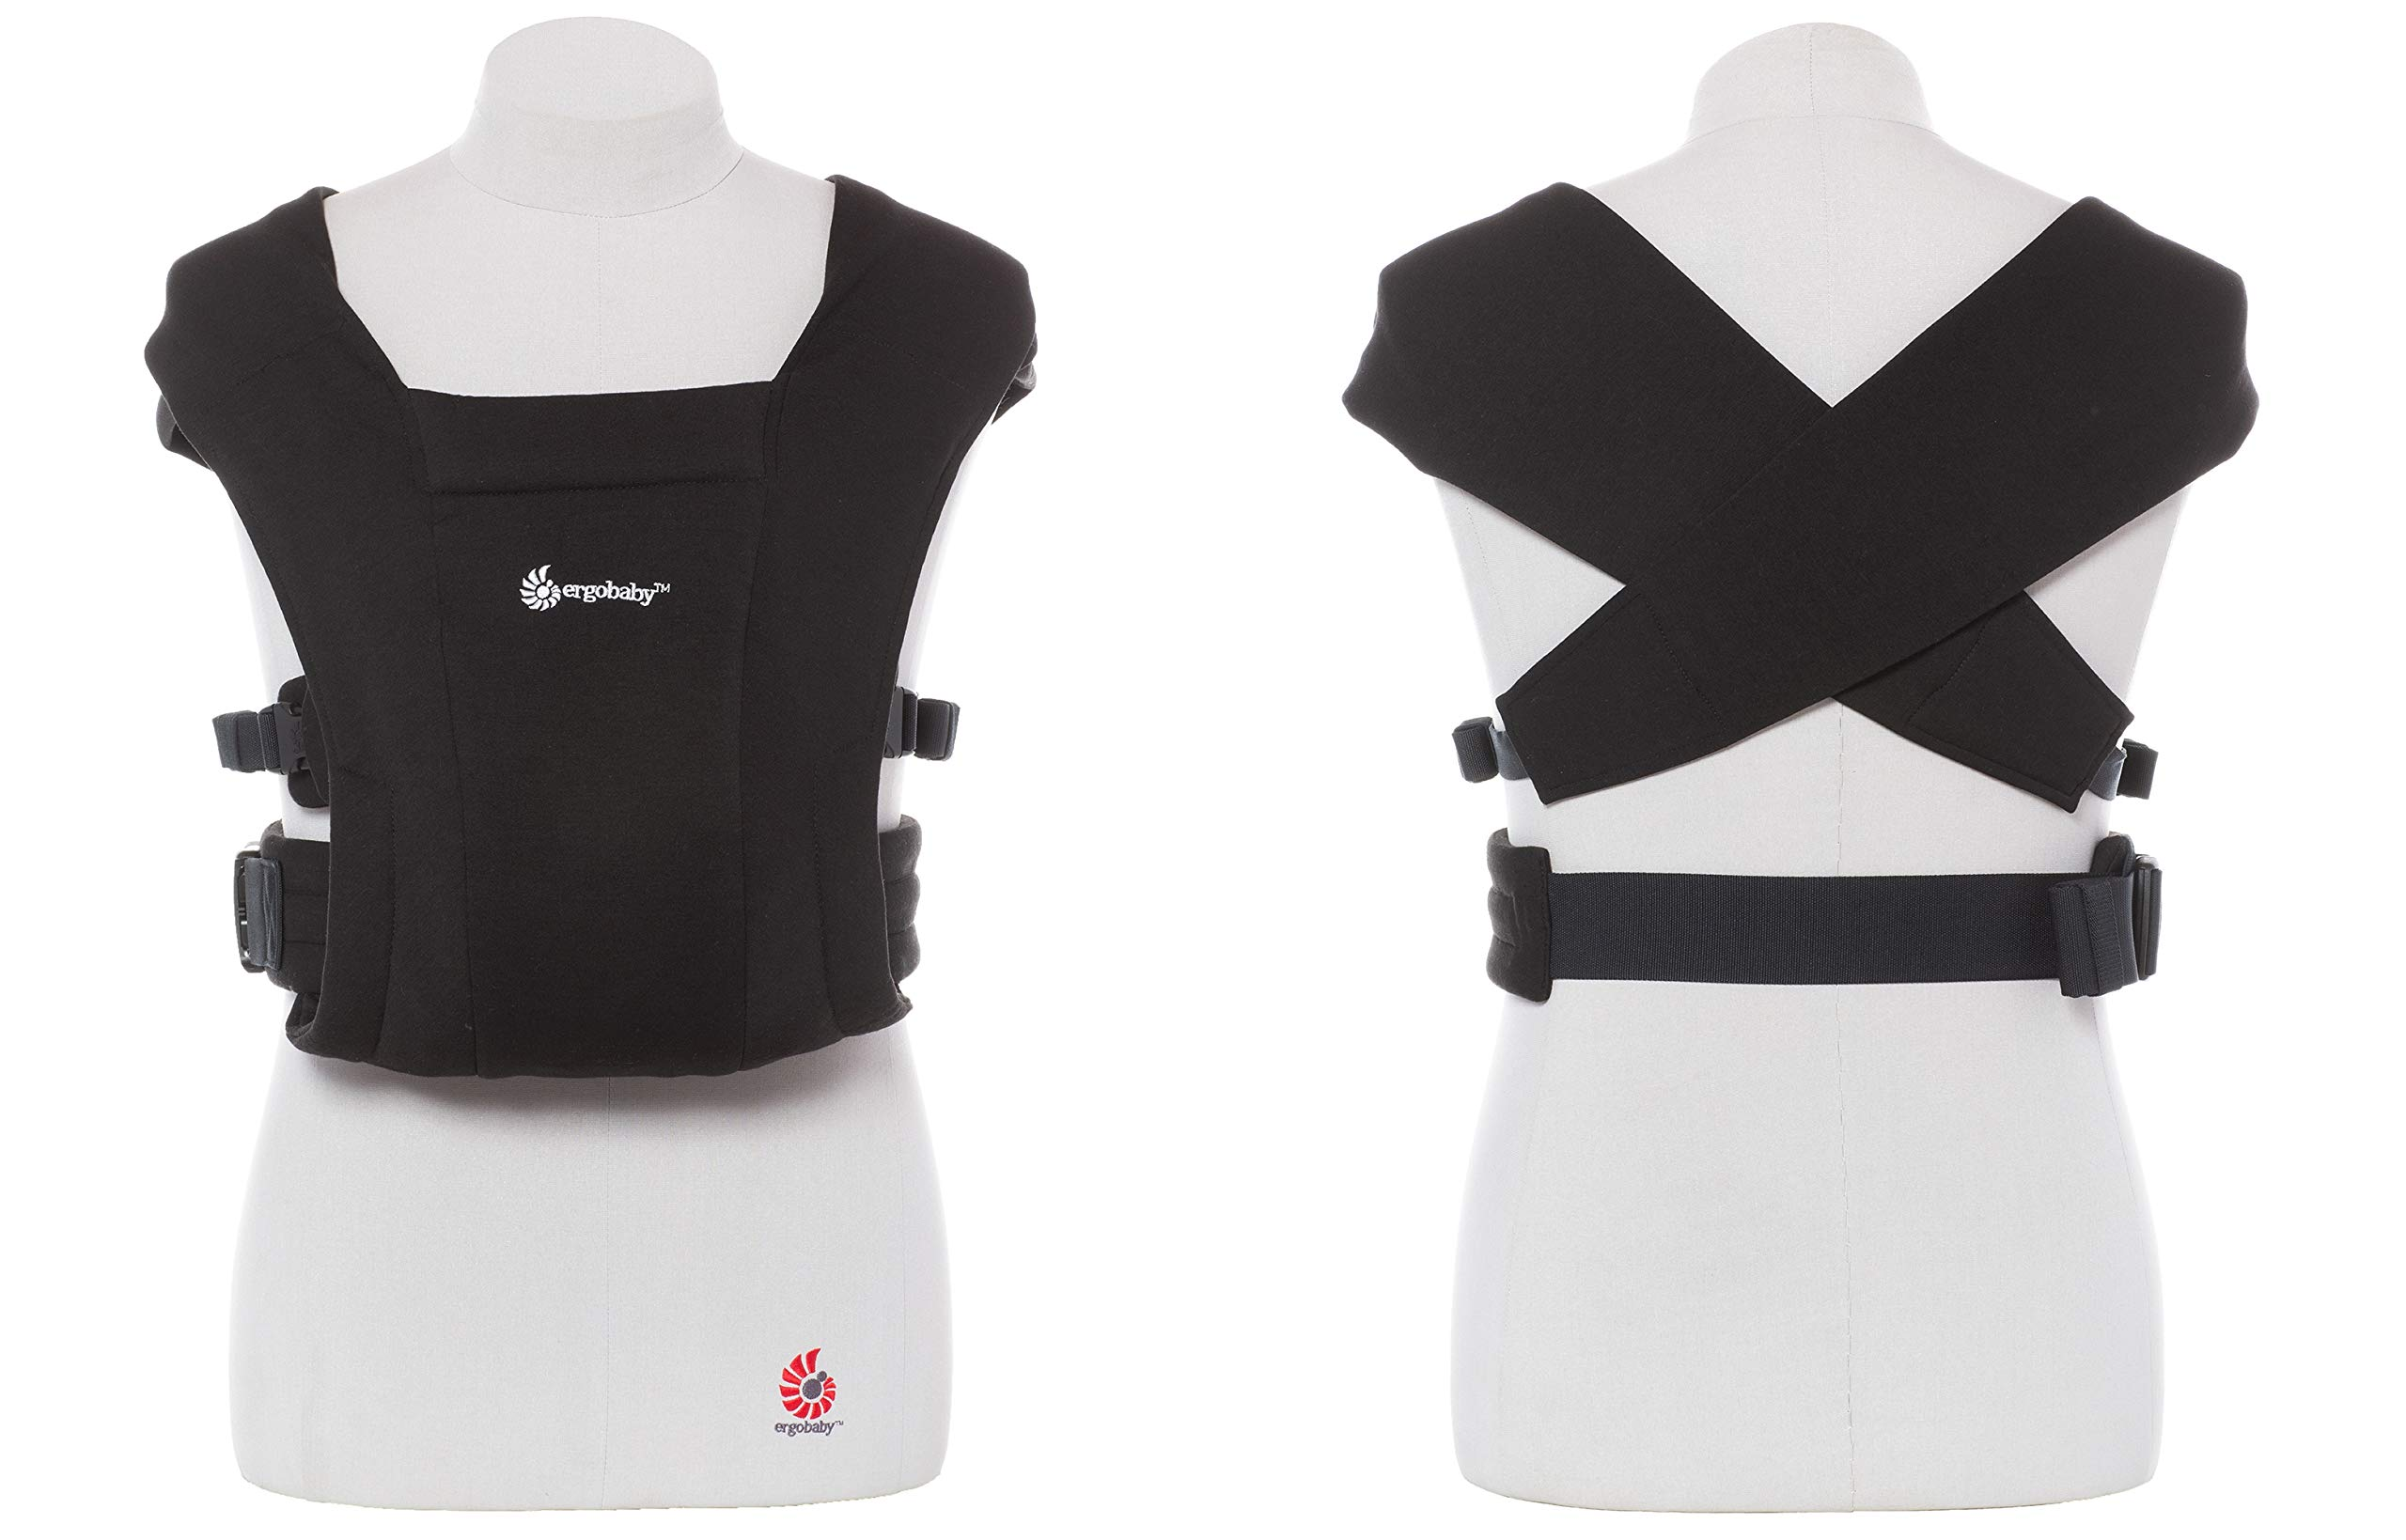 """ErgobabyEmbraceBaby Carrier for Newborns from Birth with Head Support, Extra Soft and Ergonomic (Pure Black) Ergobaby ERGONOMIC BABY CARRIER FROM BIRTH - Carry your newborn baby (3.2 - 11.3kg) snuggled close to you. The baby carrier supports the ergonomic frog-leg position (""""M"""" shape position) of the baby. NEW - The Ergobaby Embrace 2-position Carrier has been specially developed for newborns and babies. A baby carry system for quick and easy use. ULTRA-LIGHT & SUPER SOFT - Less material against the child and open-sided to allow good air circulation. Made from super soft jersey fabric, Oeko-Tex100 certified. Lightweight carrier (approx. 480g). 8"""